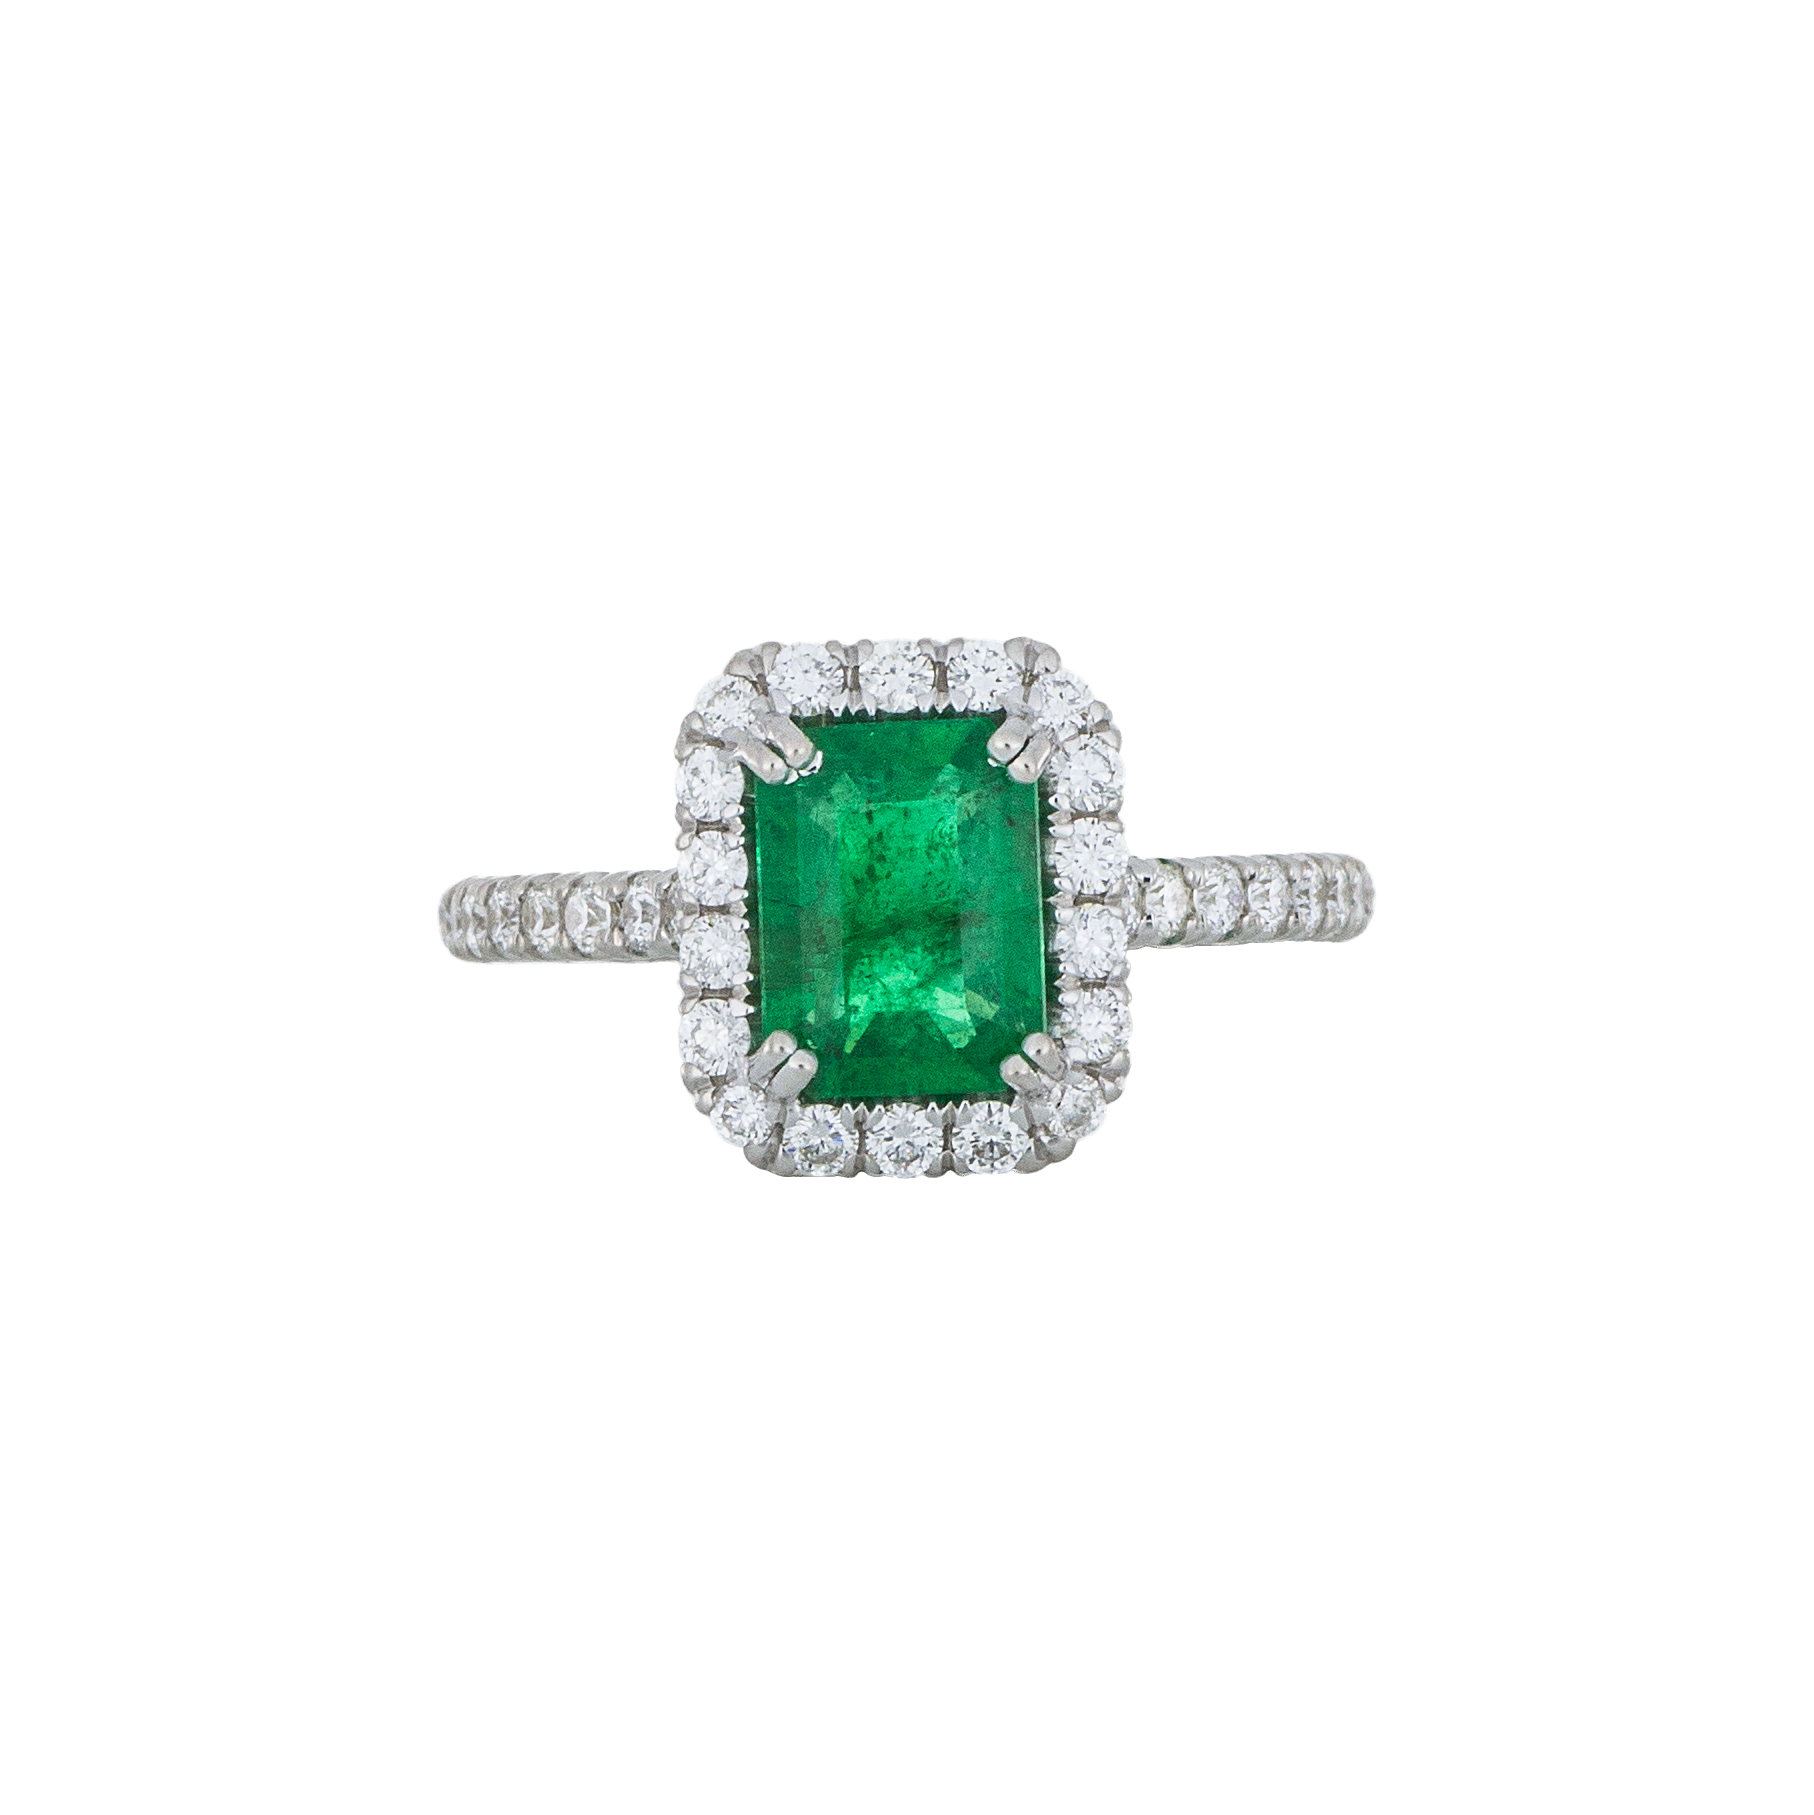 Emerald Diamond Halo Engagement Ring - White Gold - Afghan, Persian, Irish, Turkish